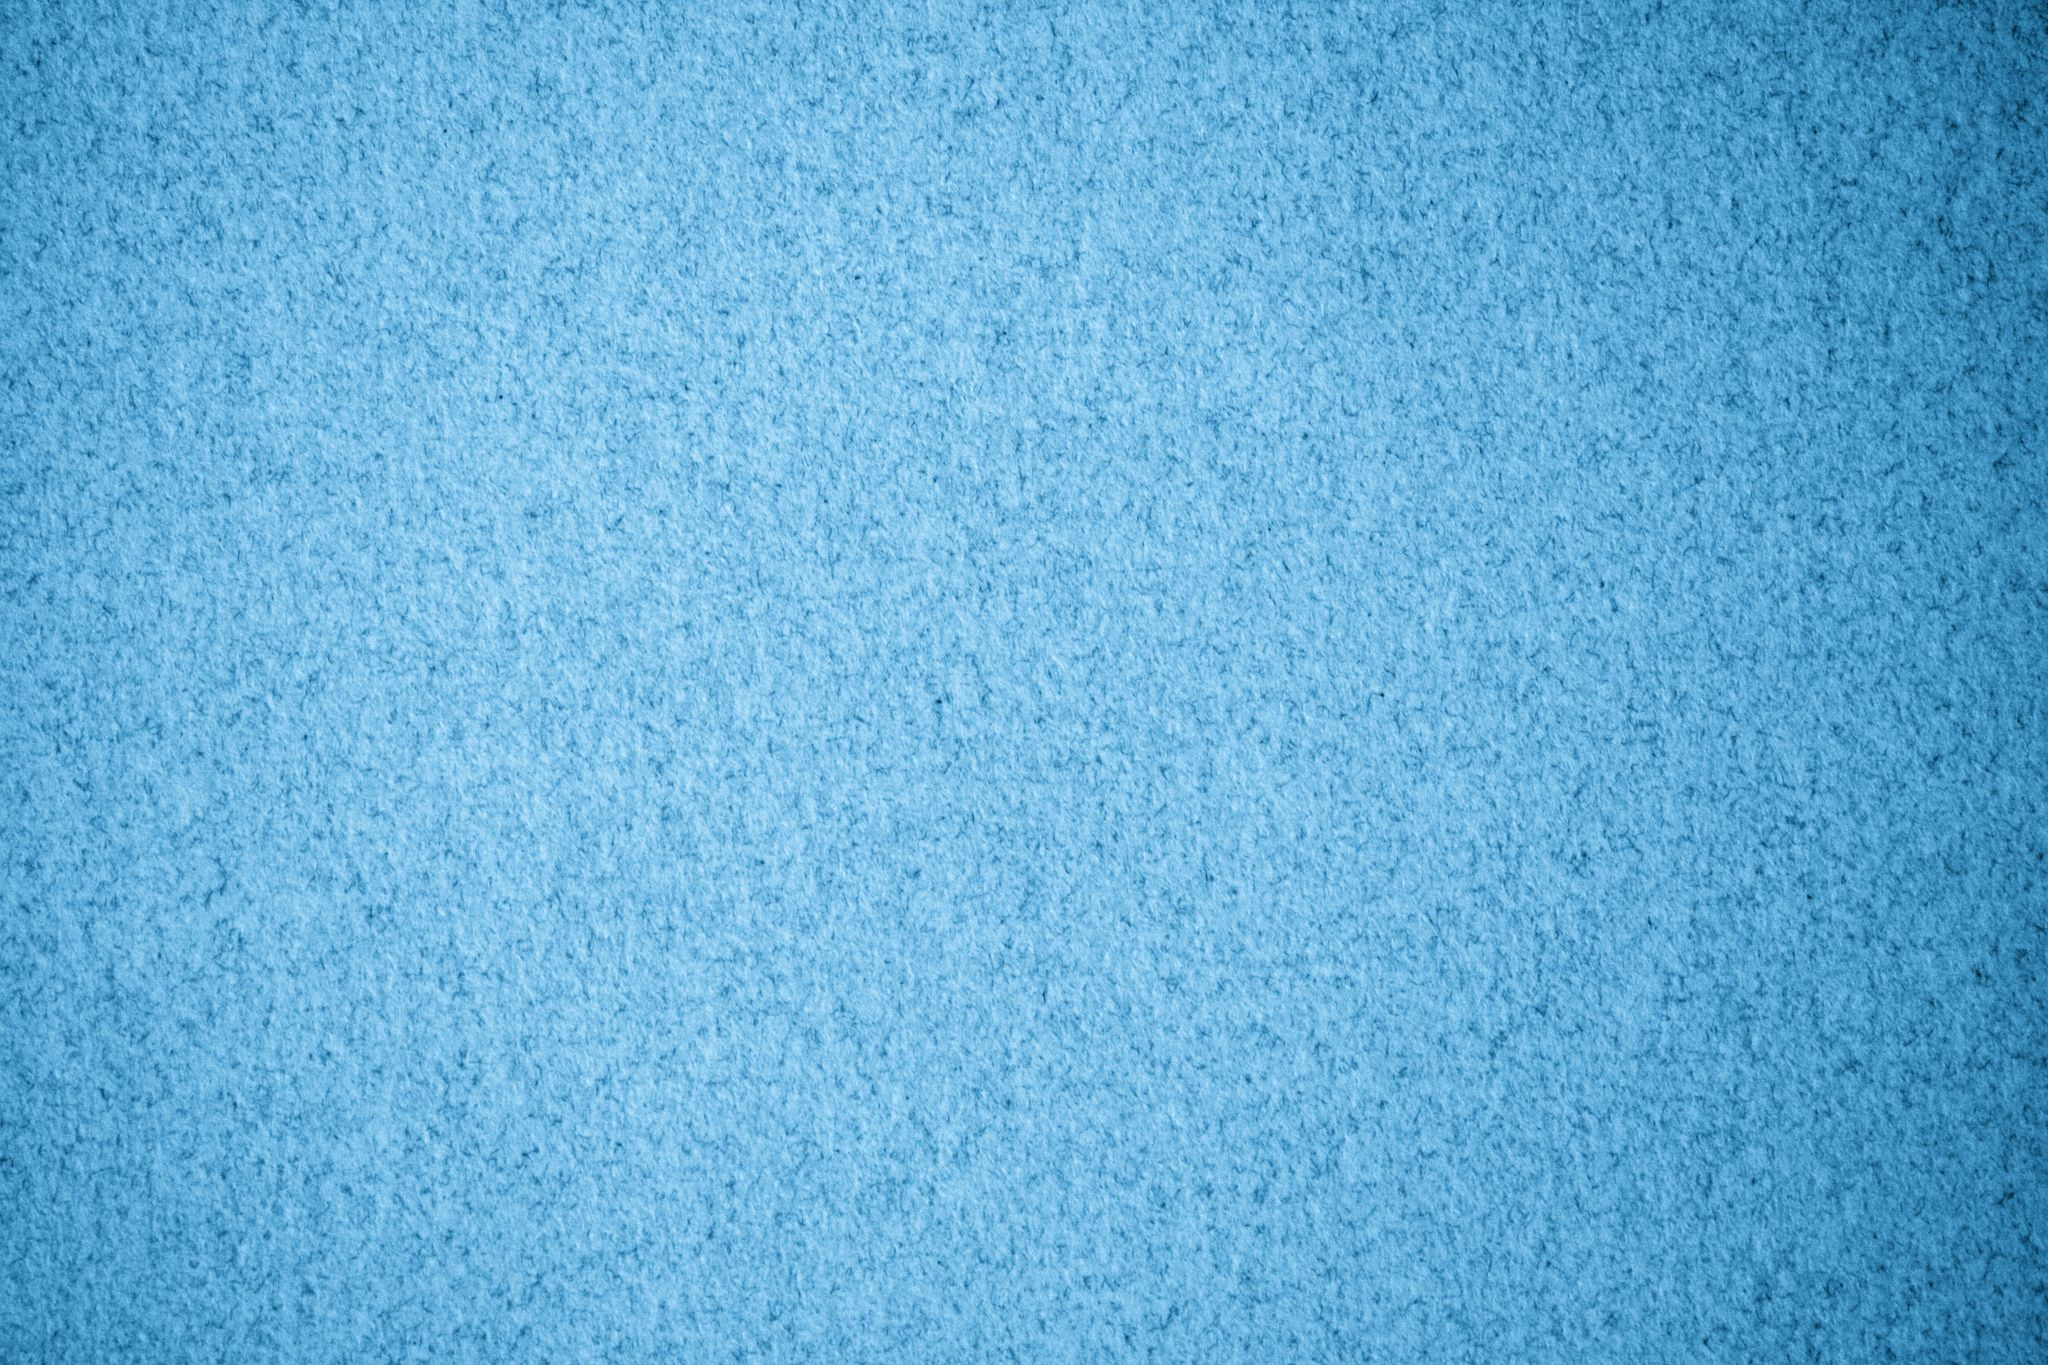 sky-blue-speckled-paper-texture